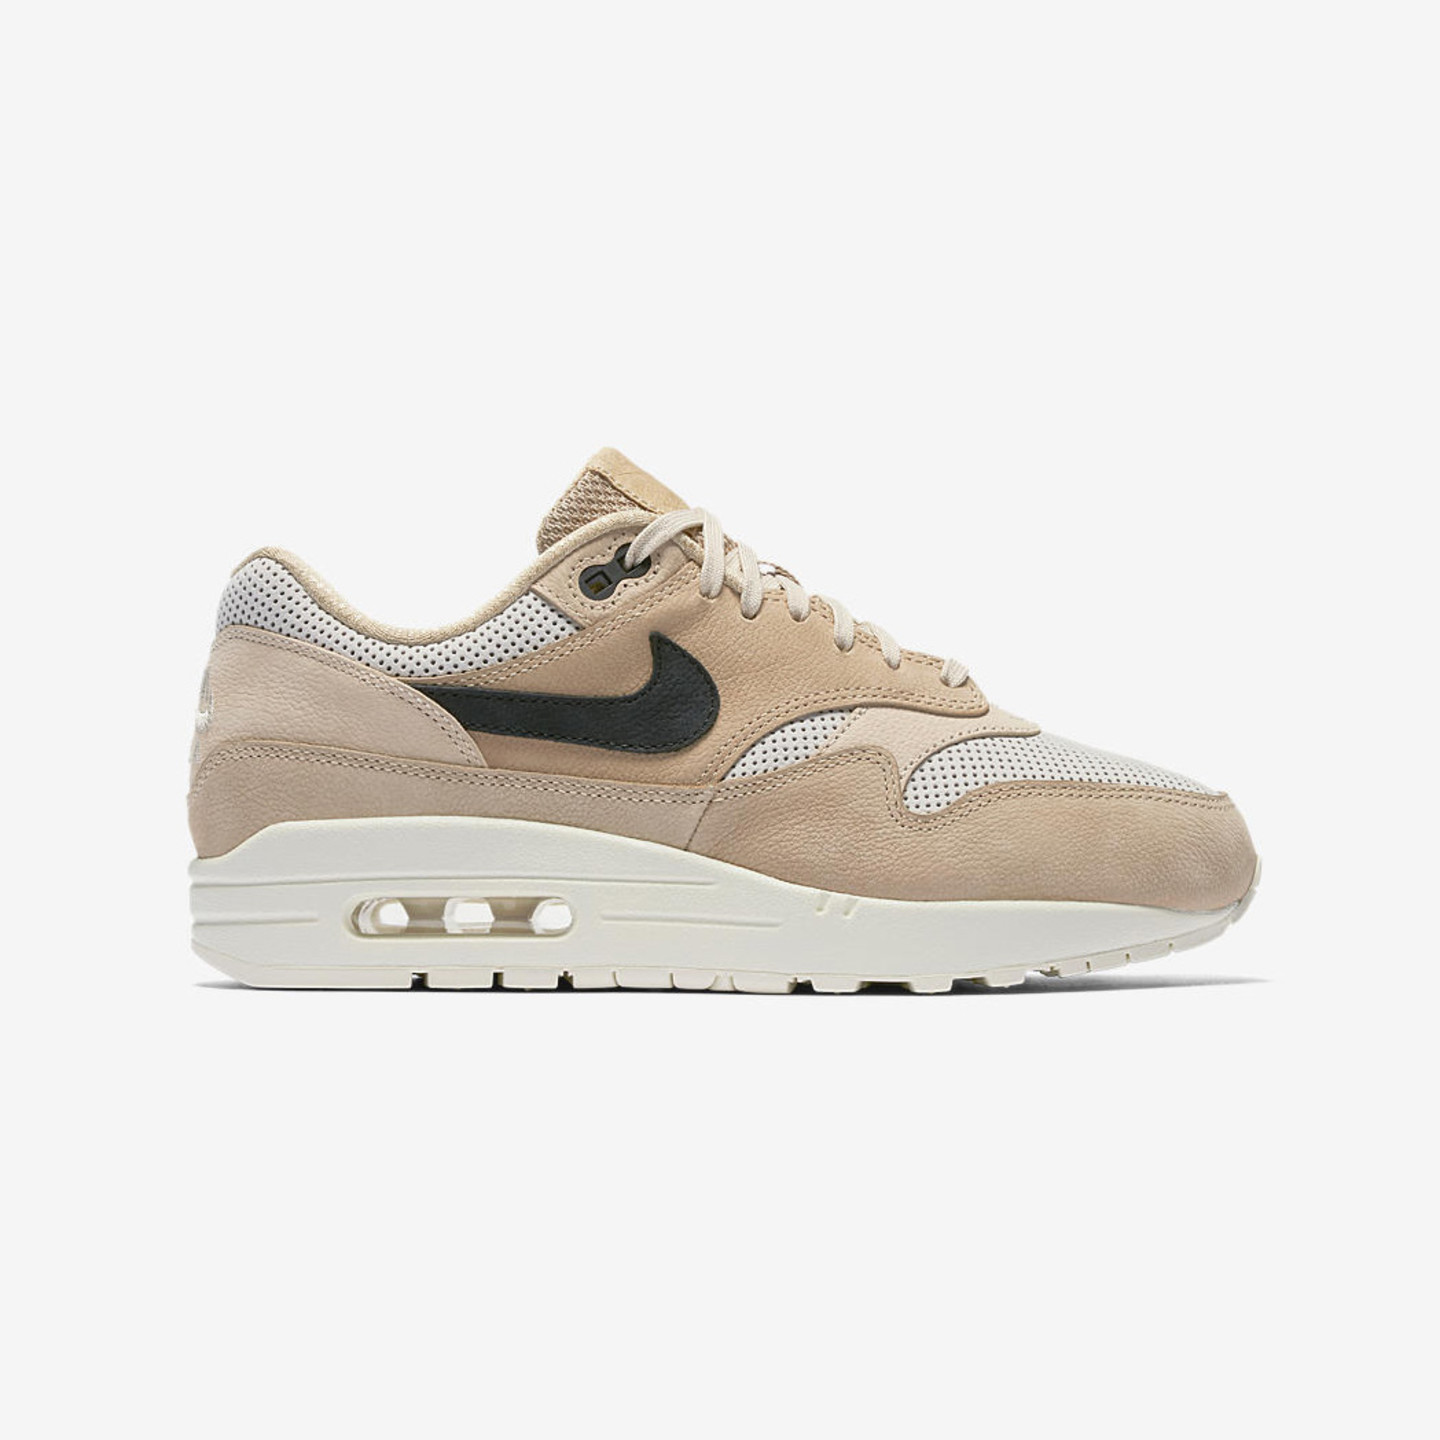 Nike Wmns Air Max 1 Pinnacle Mushroom / Black / Light Bone / Oatmeal 839608-201